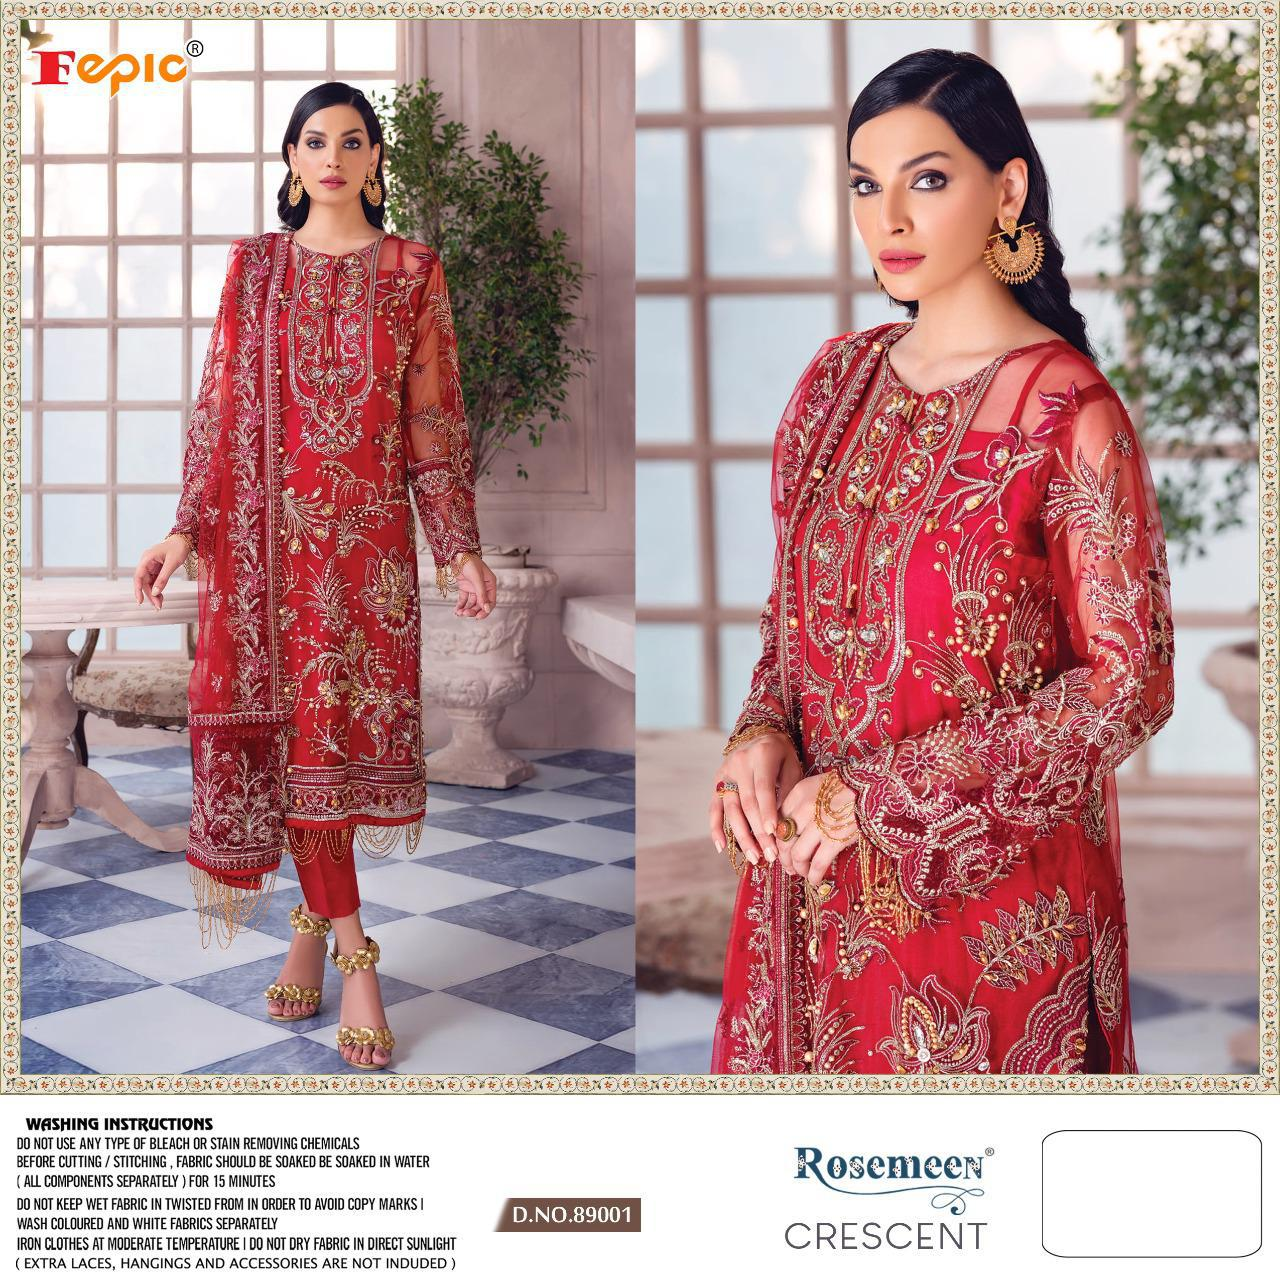 Fepic Rosemeen Crescent Georgette And Net With Heavy Embroidery Handwork Pakistani Dress Material At Wholesale Rate